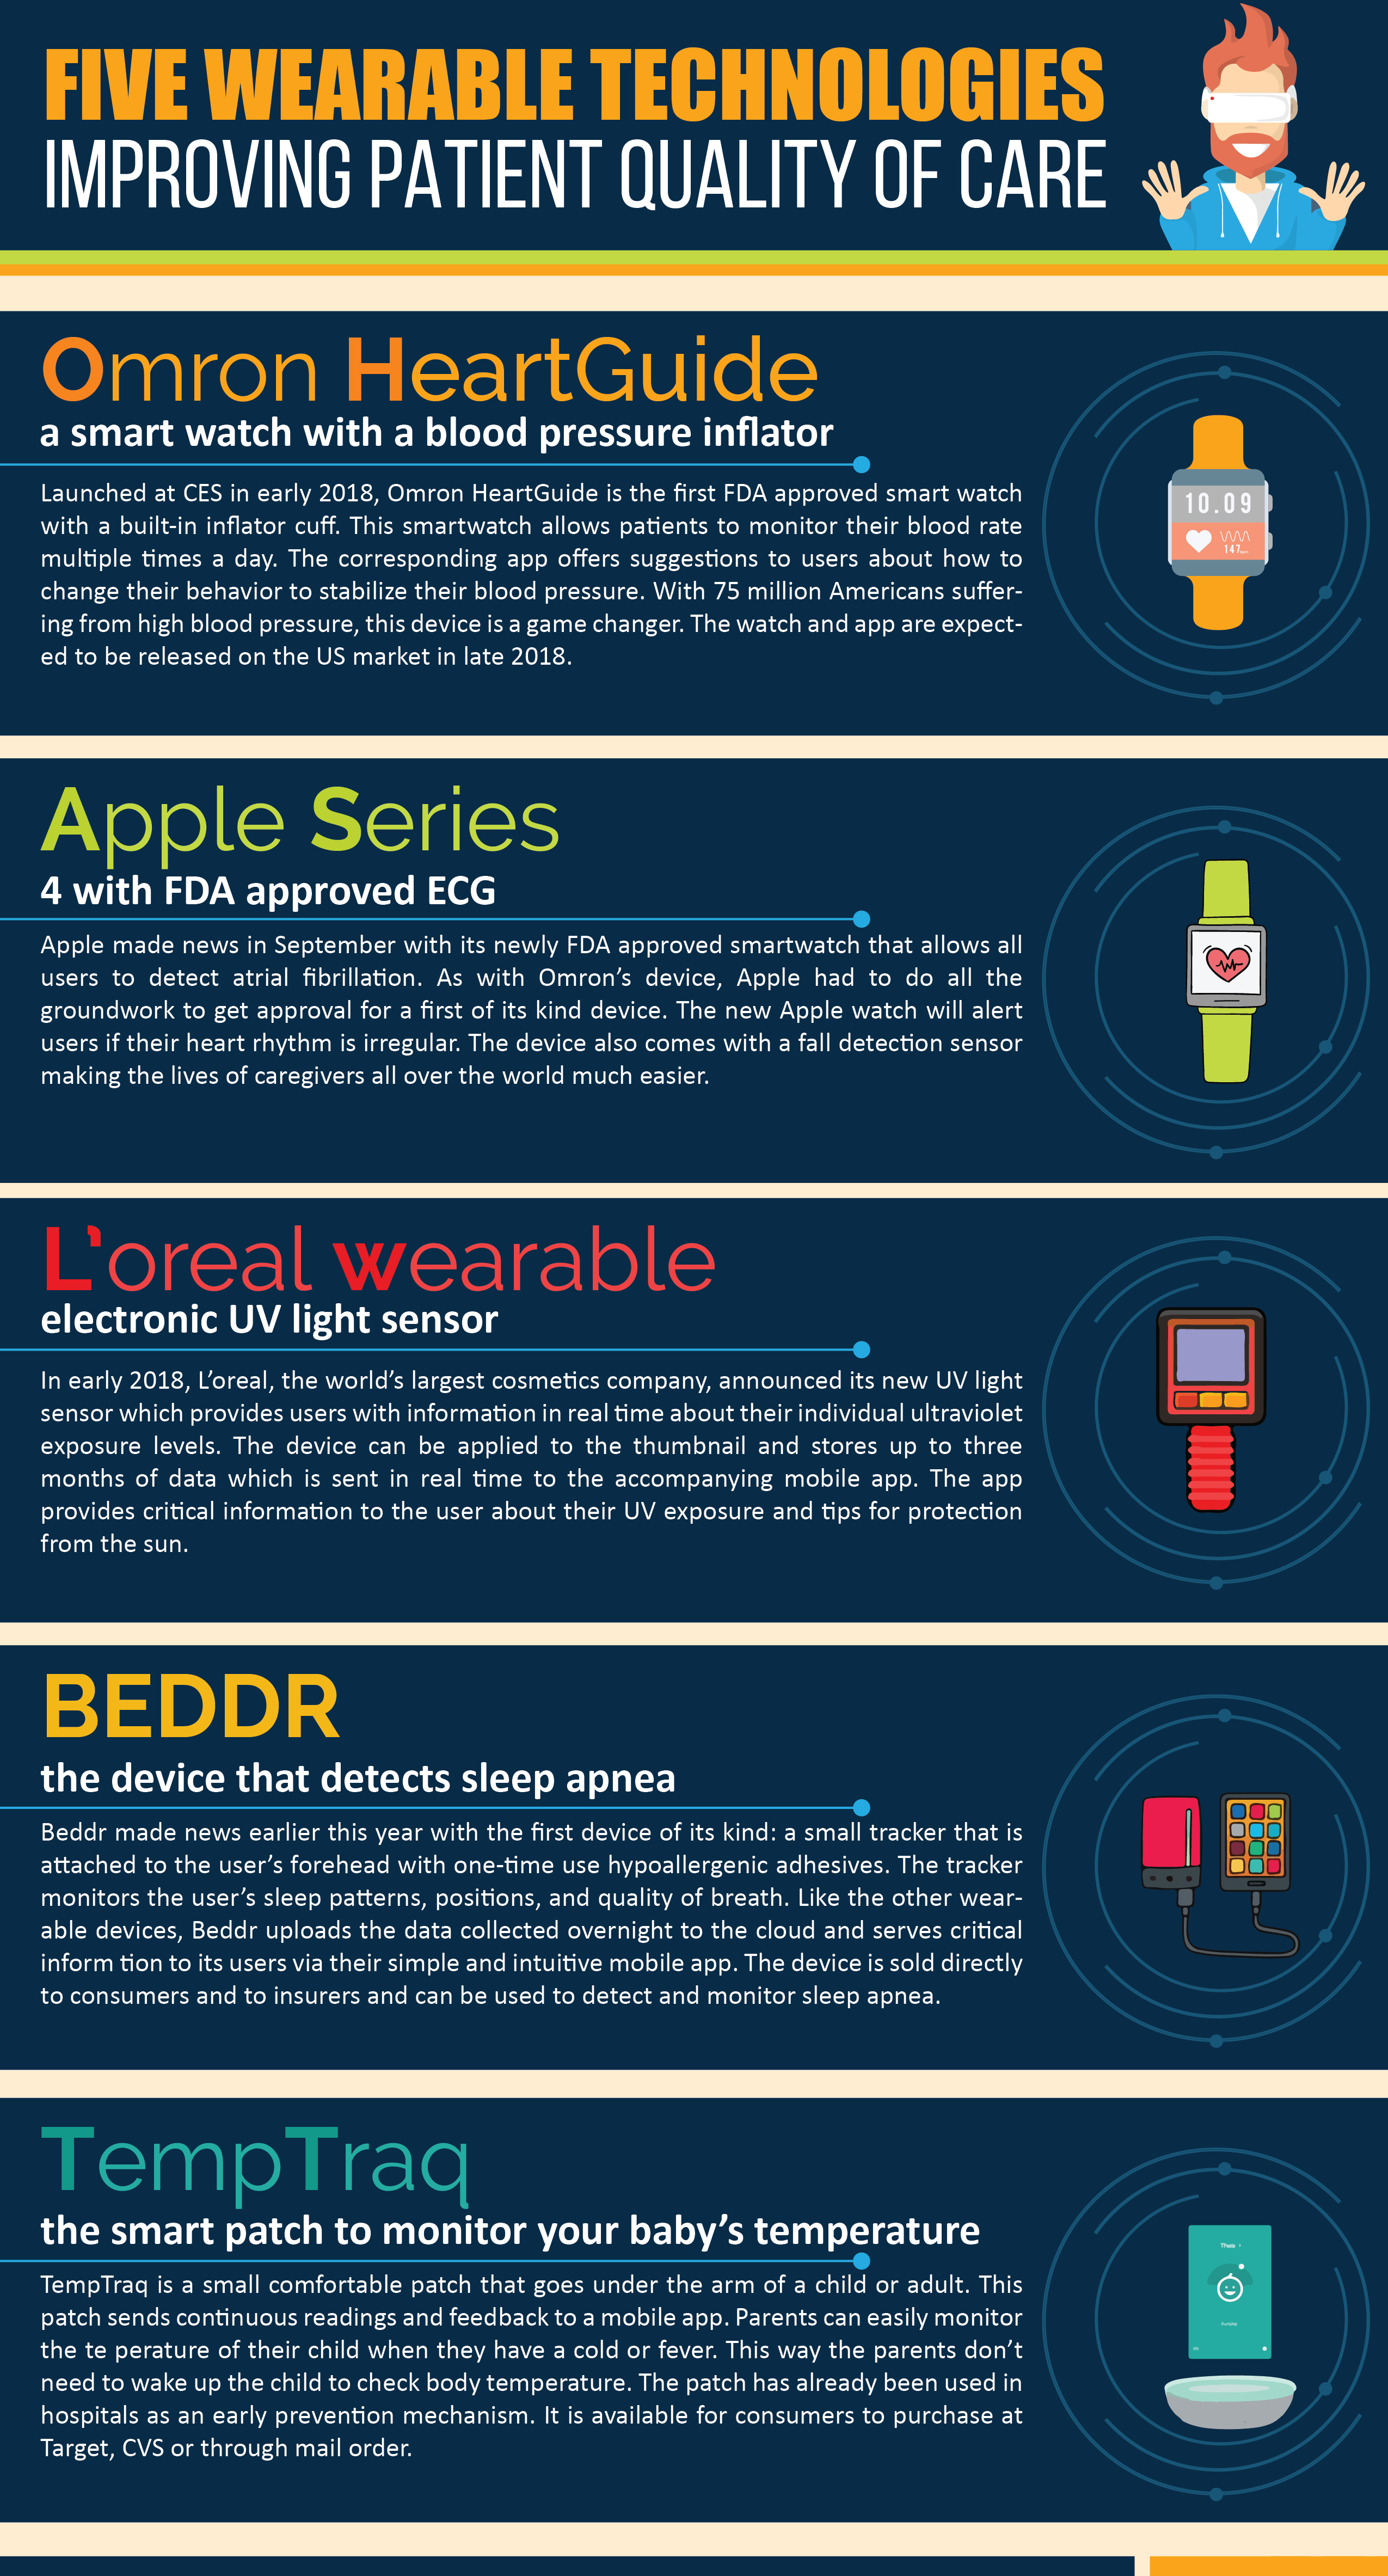 Infographic: 5 Wearable technologies improving patient quality of care